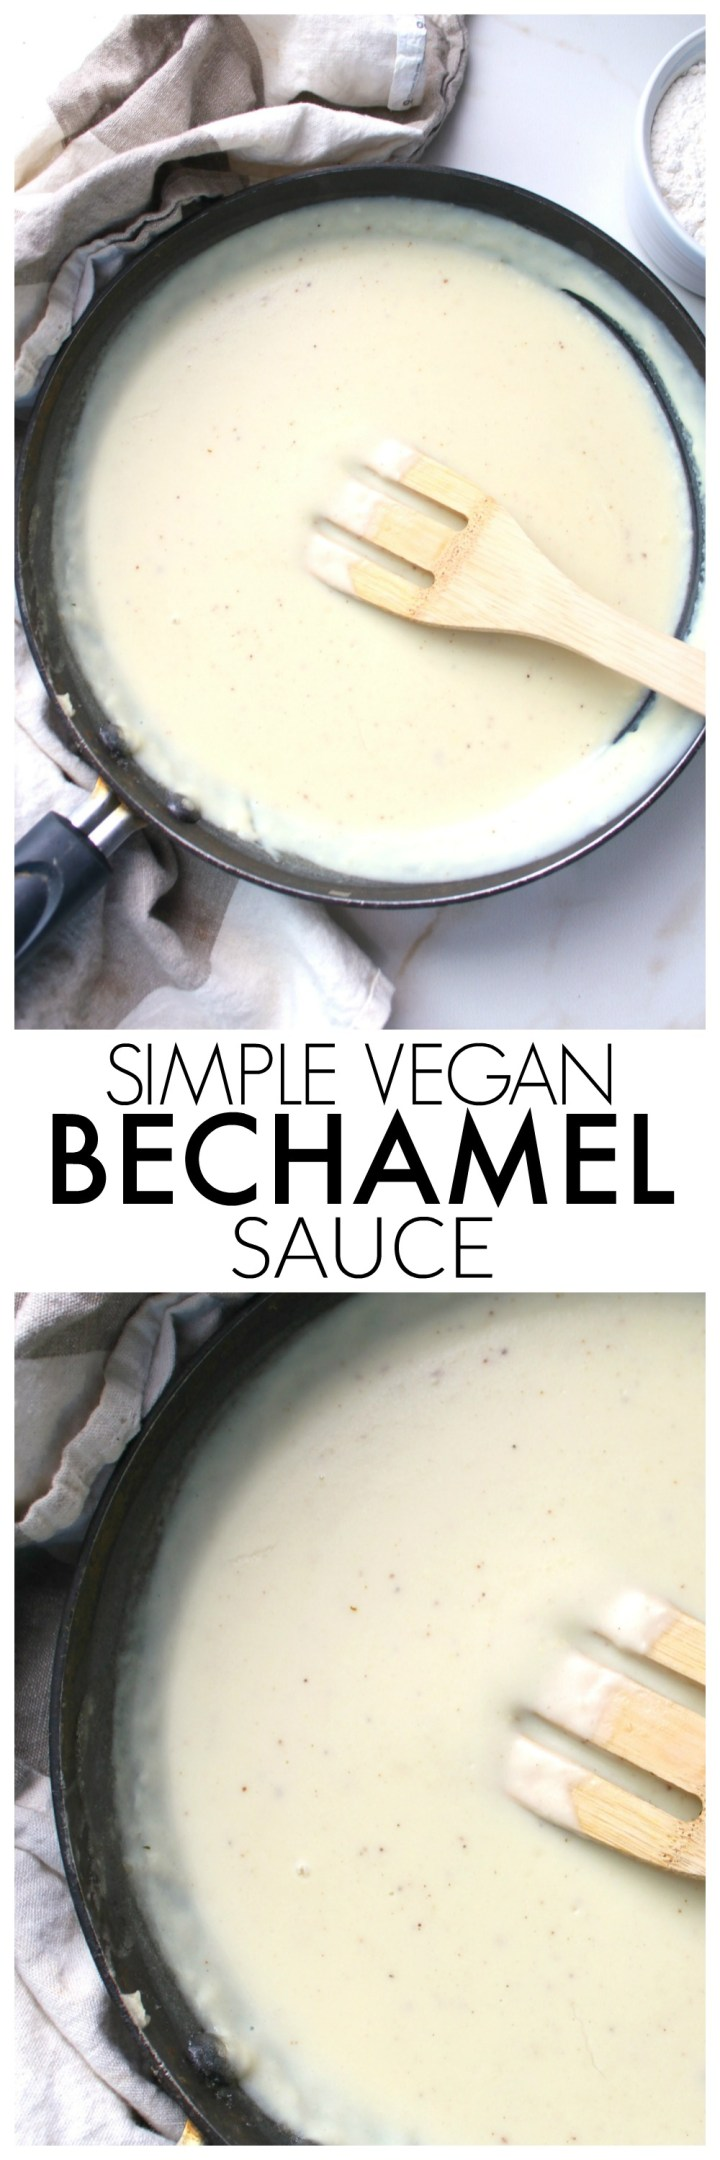 A classic creamy white sauce is vegan-ized with thisSimple Vegan Bechamel Sauce recipe. The perfect base sauce for any pasta dish | ThisSavoryVegan.com #vegan